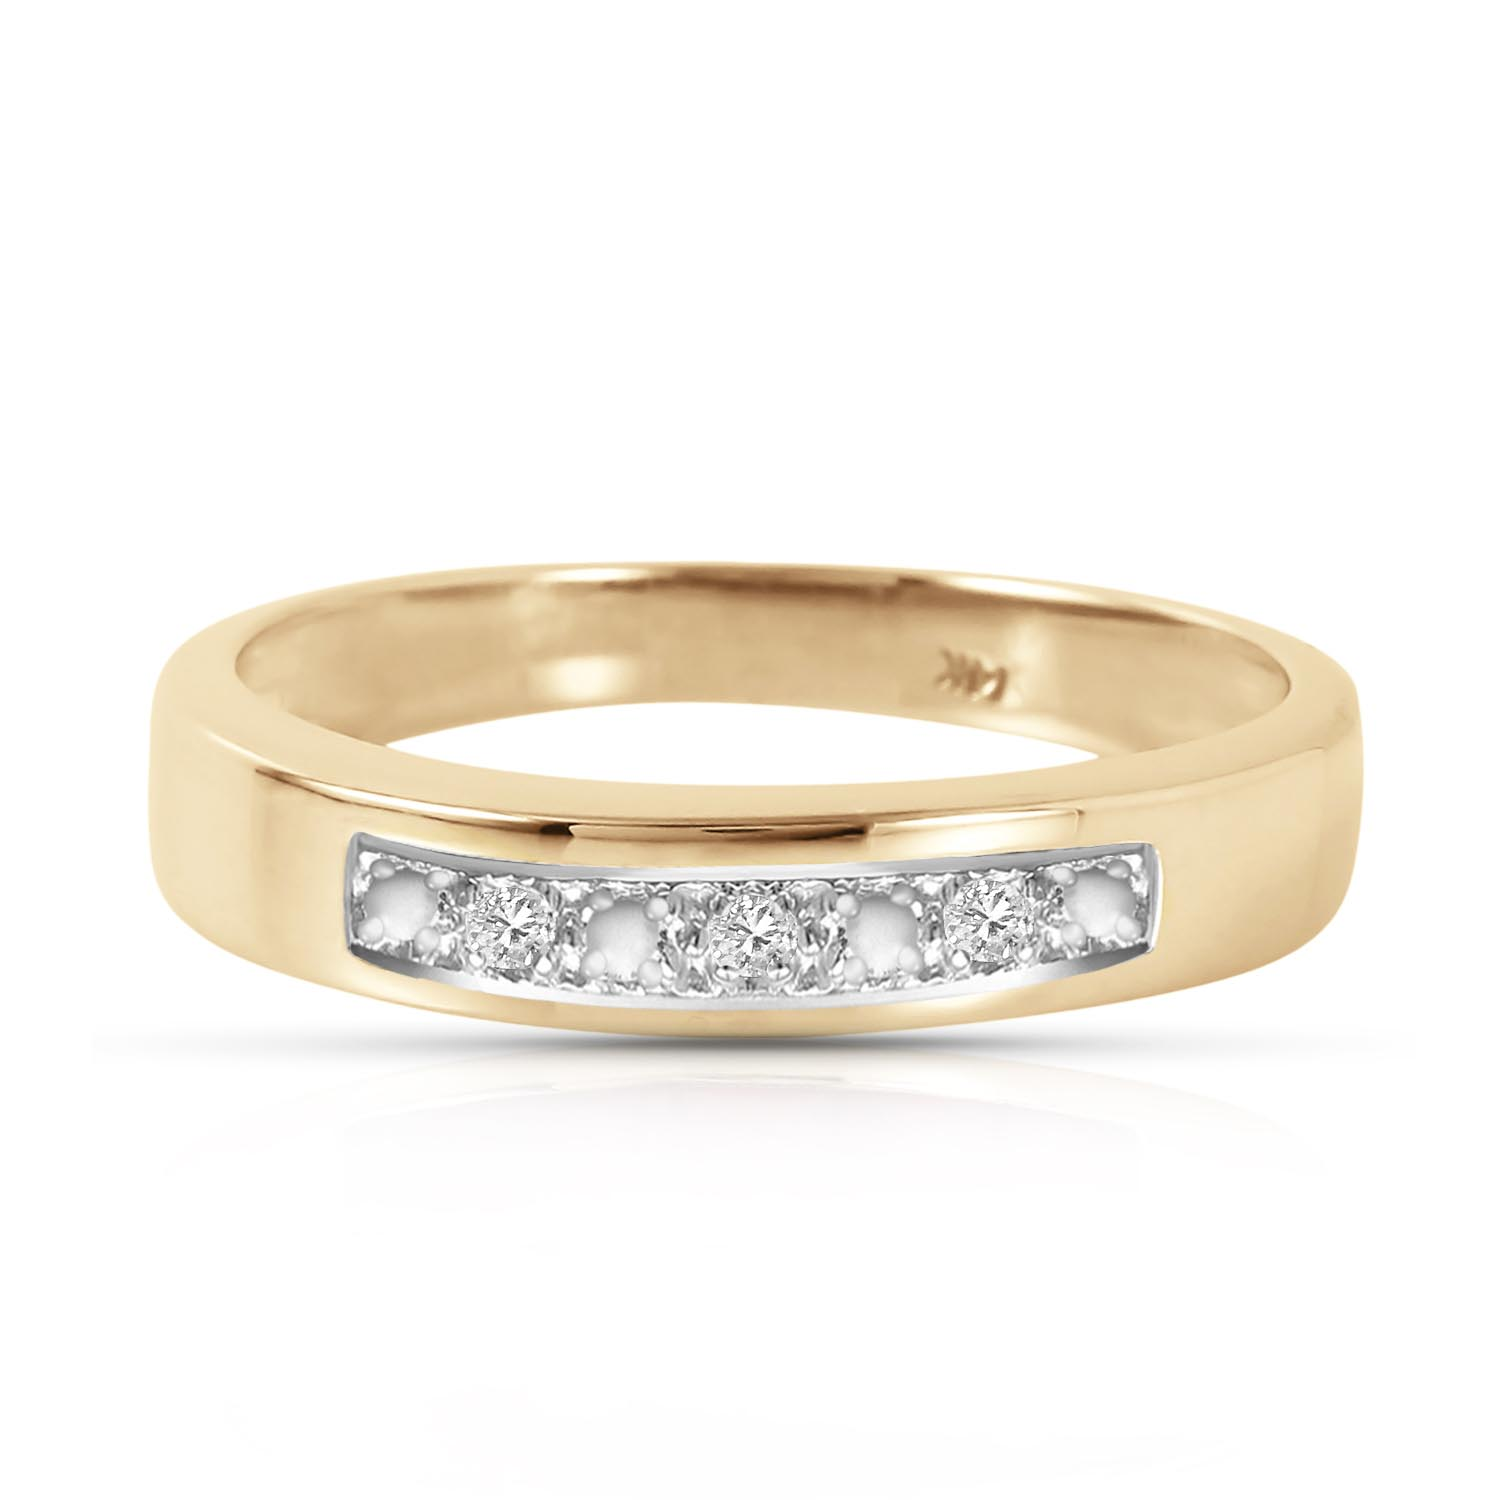 Round Cut Diamond Ring 0.02 ctw in 18ct Gold